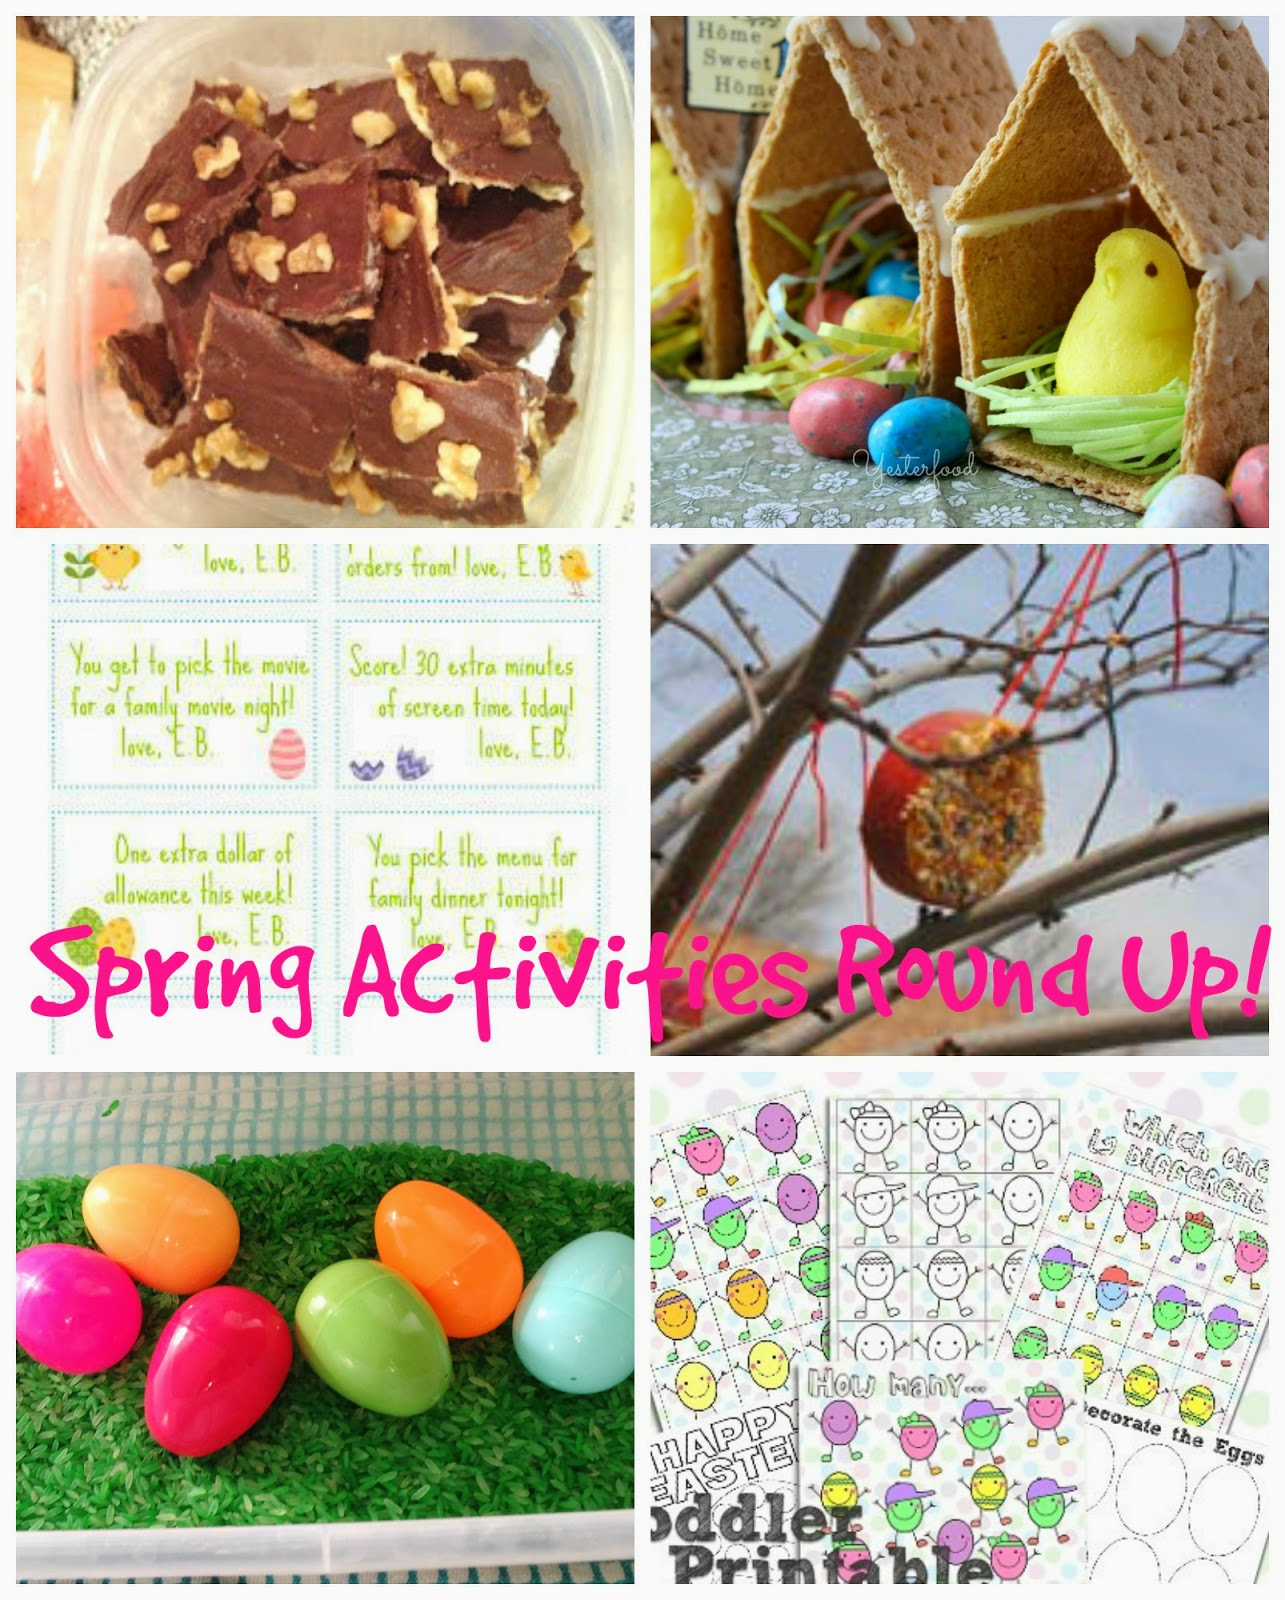 Kid Friendly Spring Activities and Recipes @blogginginpa